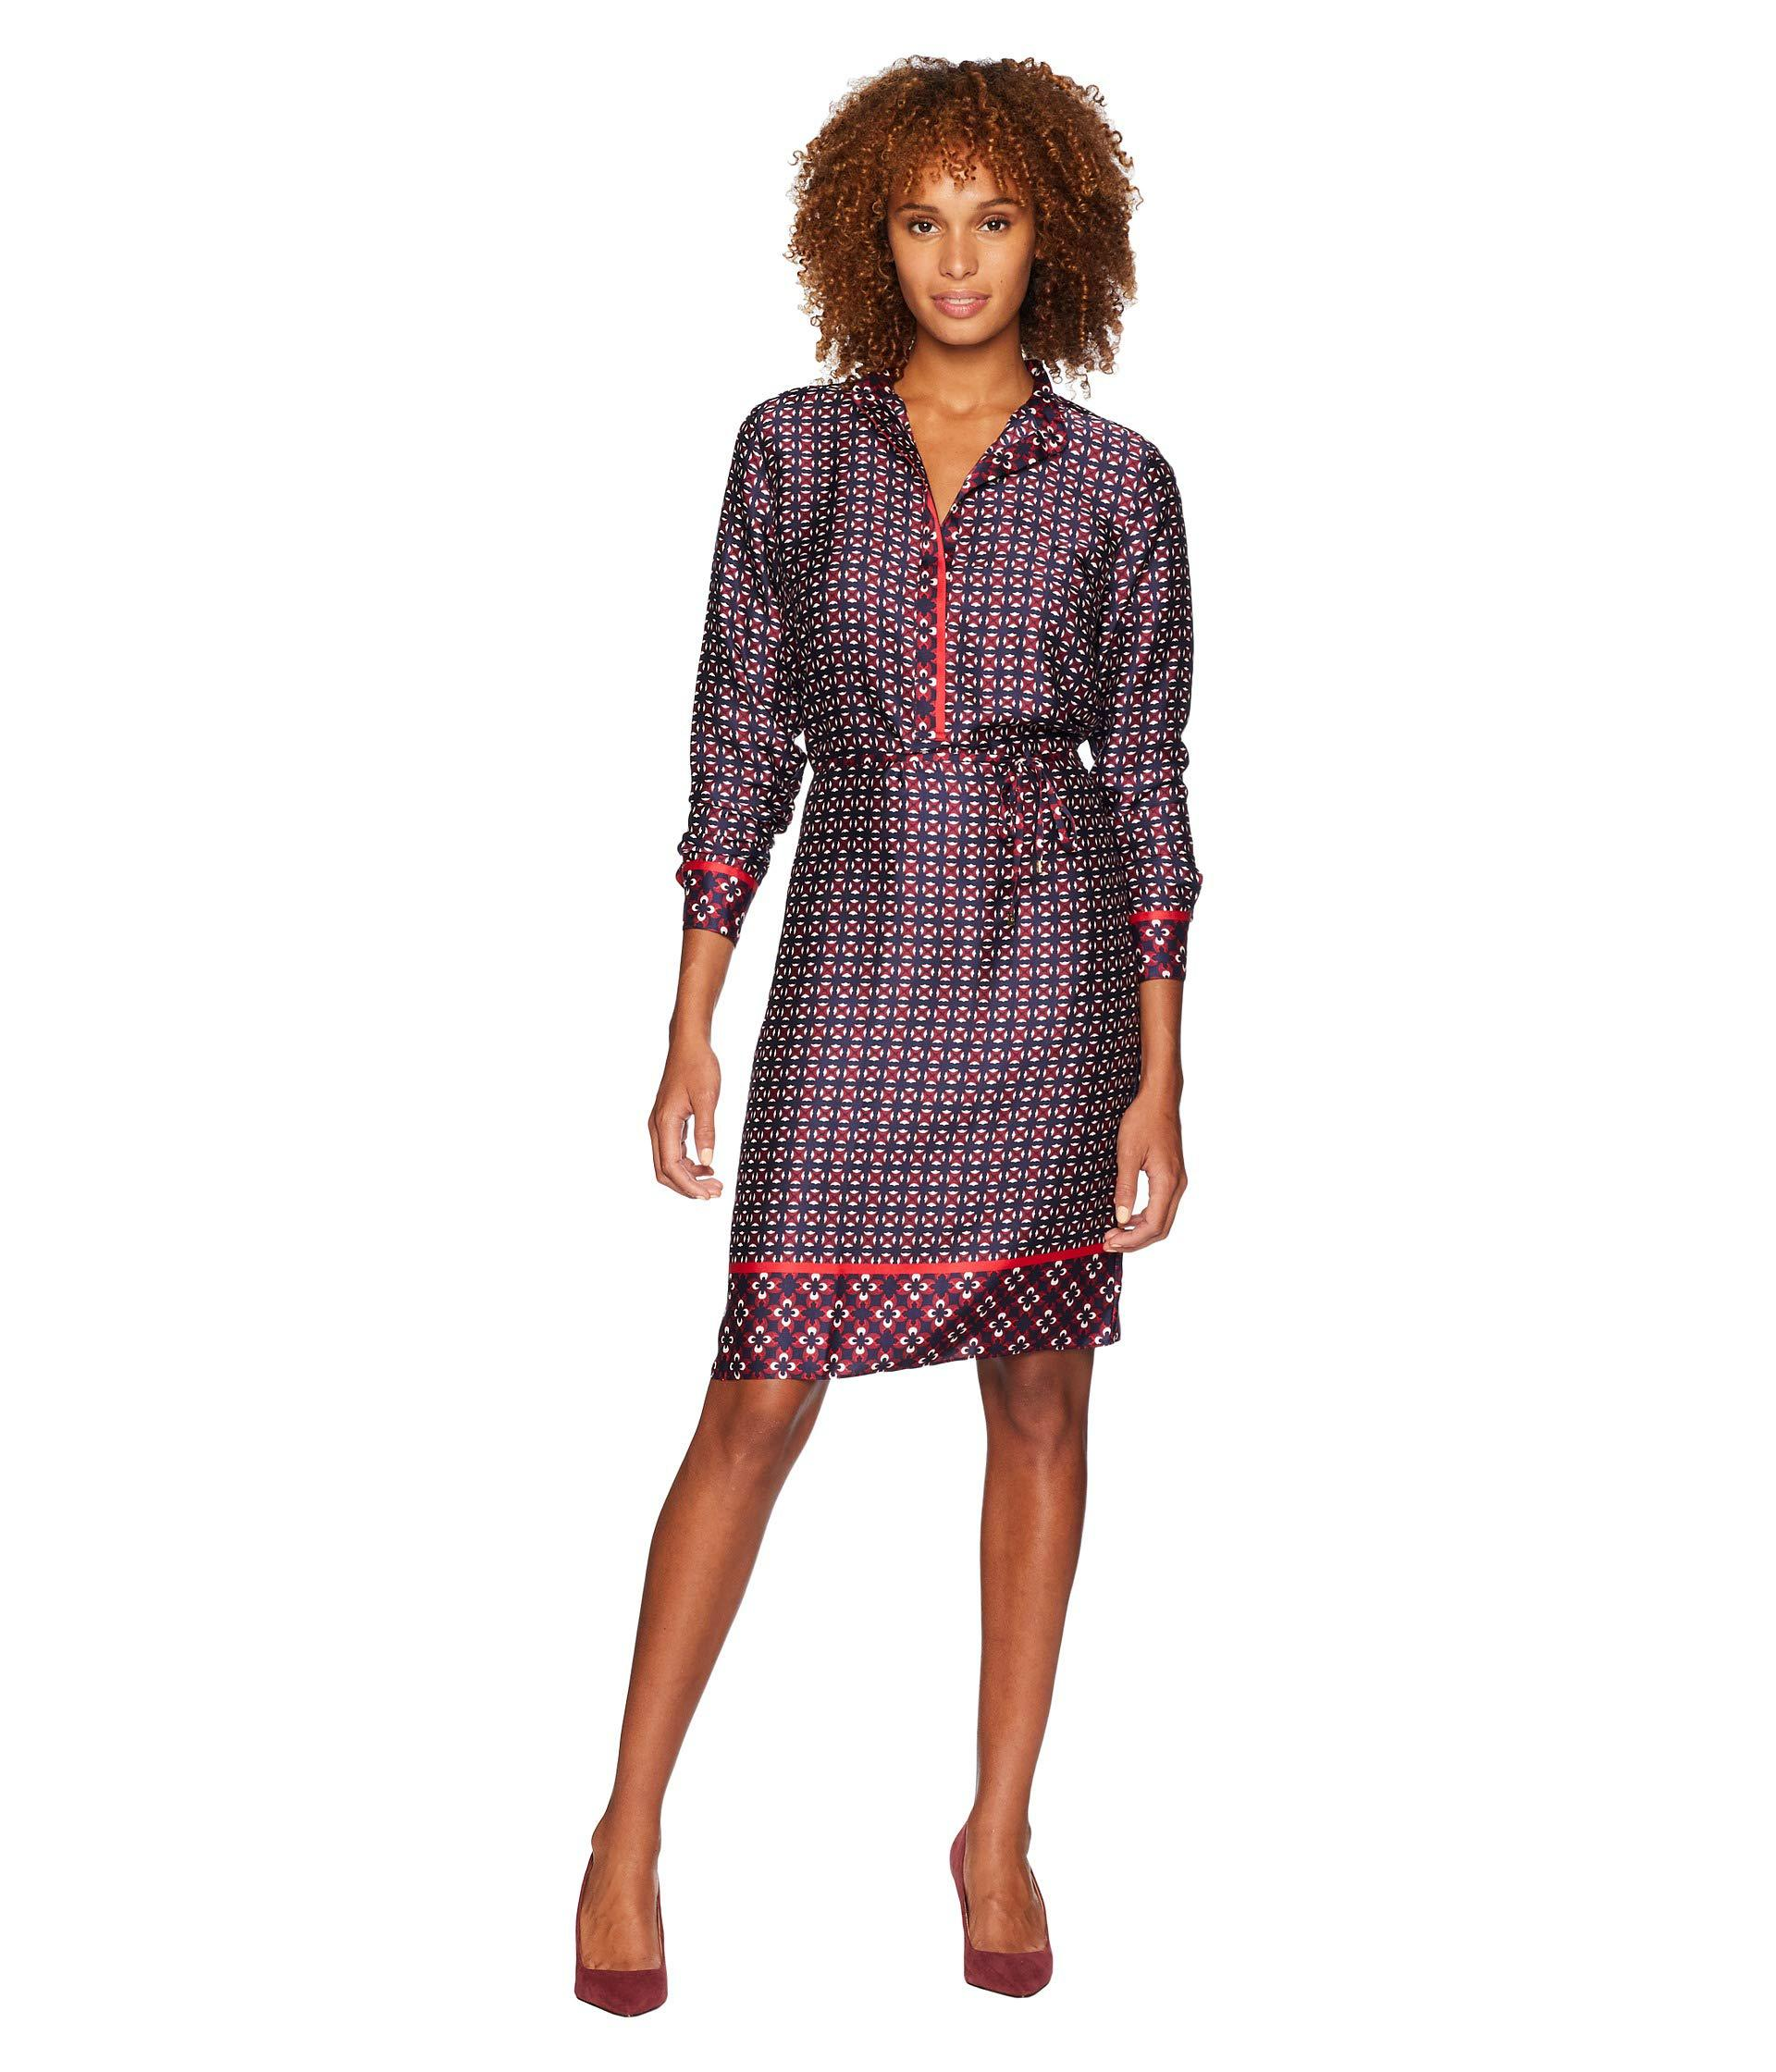 7fbc1342e6b38 Lyst - Lauren by Ralph Lauren Print Twill Shirtdress in Purple